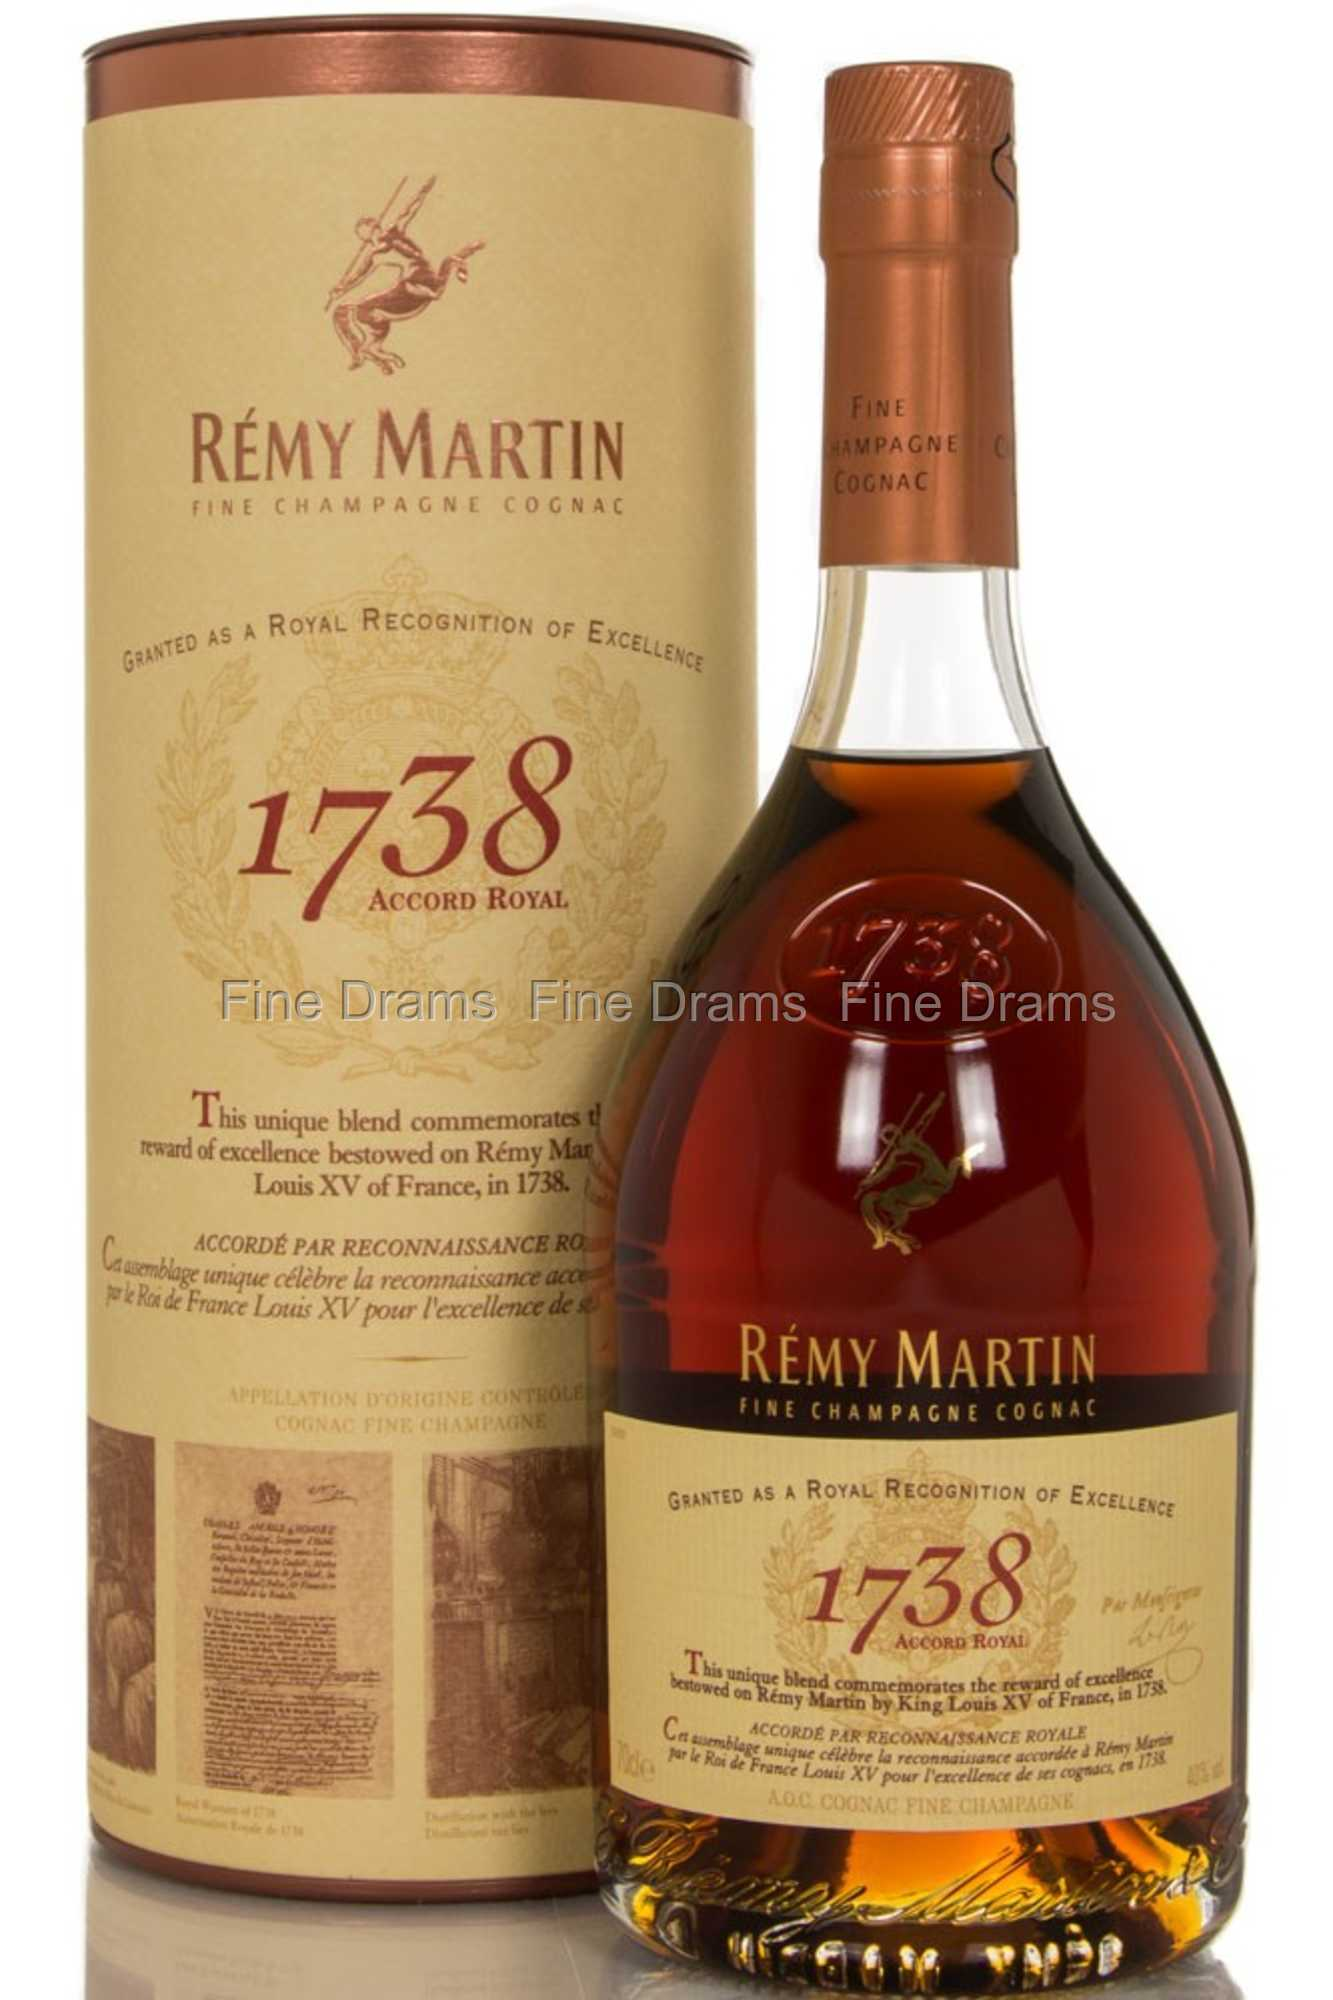 remy martin 1738 accord royal cognac review